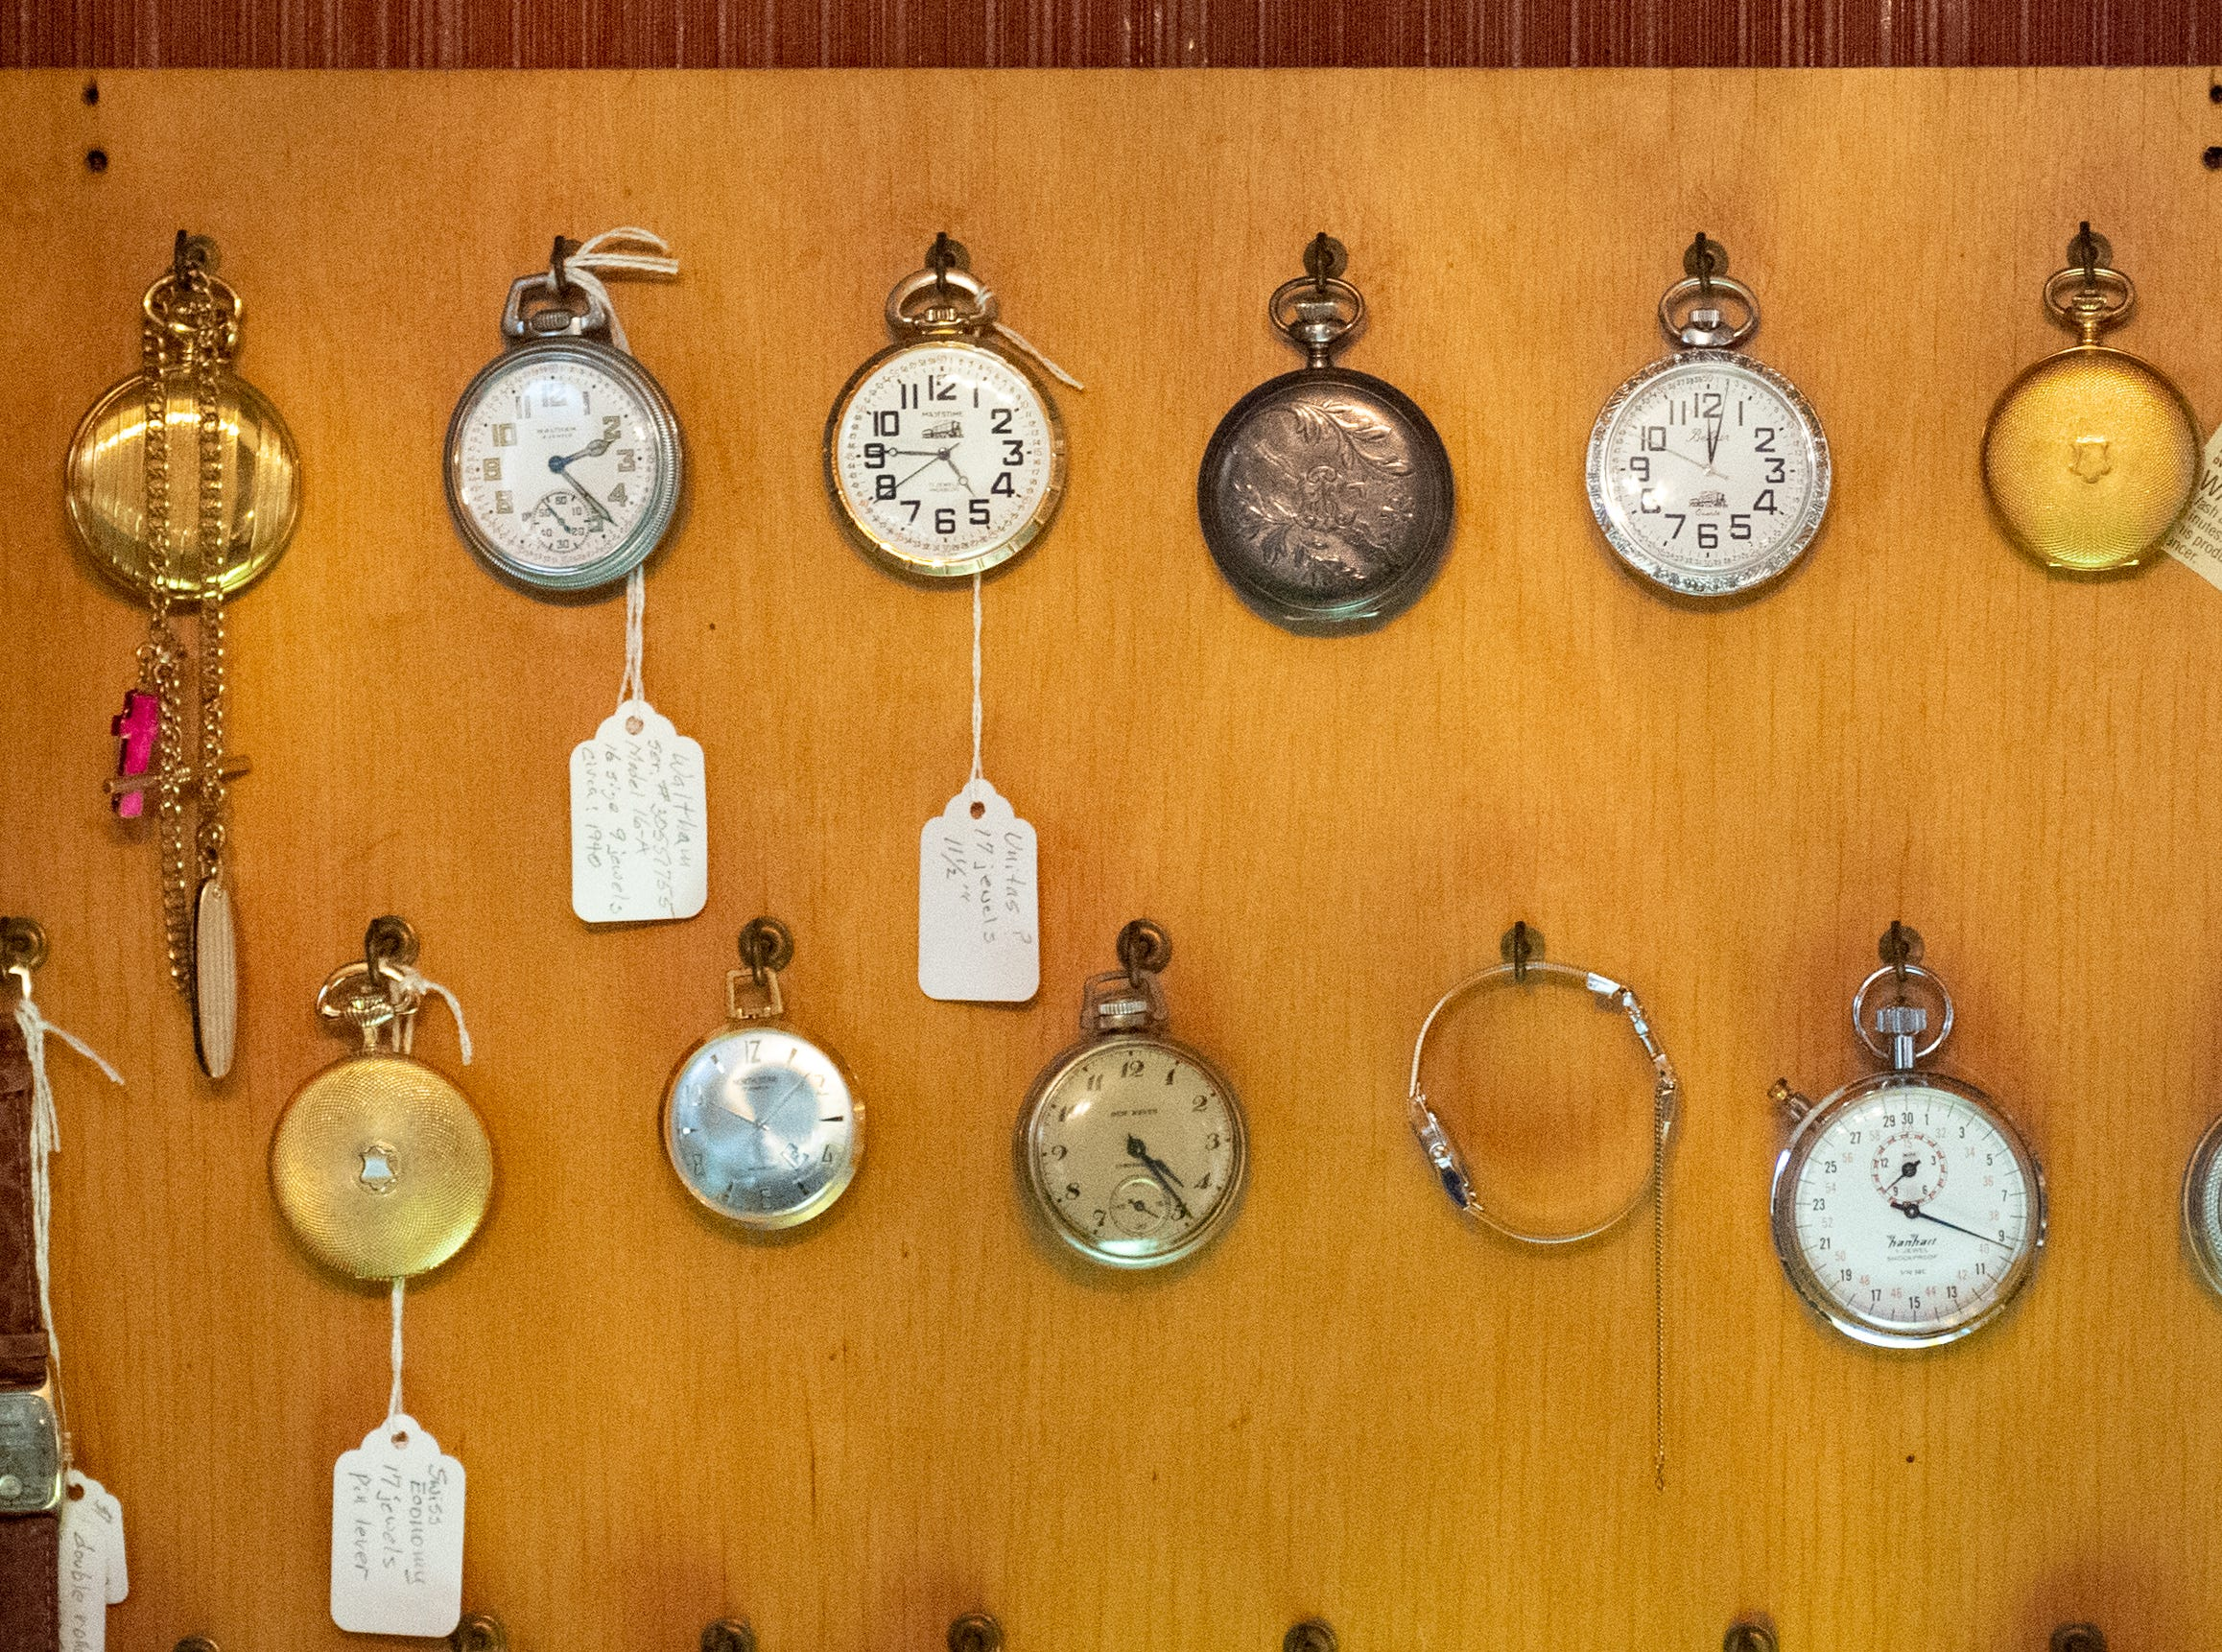 Ronald Botterbusch hangs some of his own favorite watches up in front of his desk, January 30, 2019.